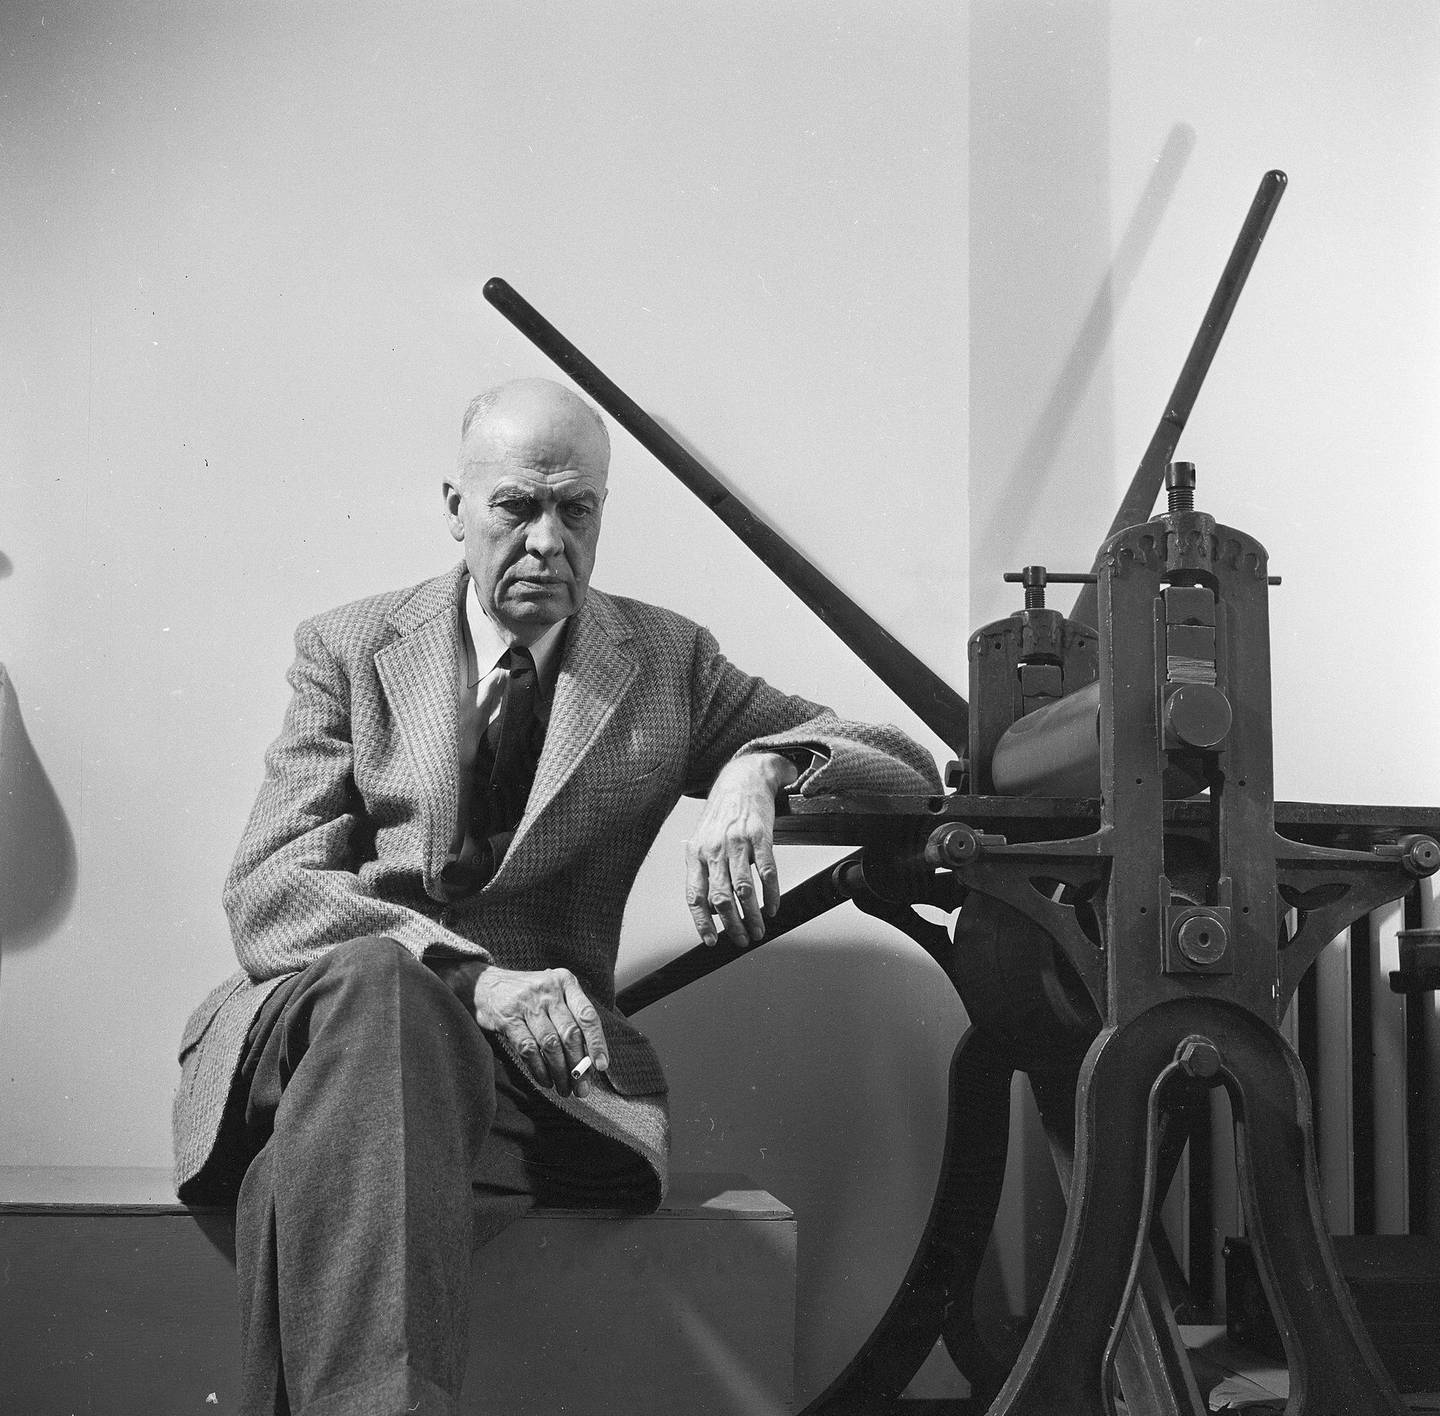 circa 1955:  American realist painter, Edward Hopper (1882-1967) sitting by a manual printing press in his Greenwich Village studio.  (Photo by Three Lions/Getty Images)